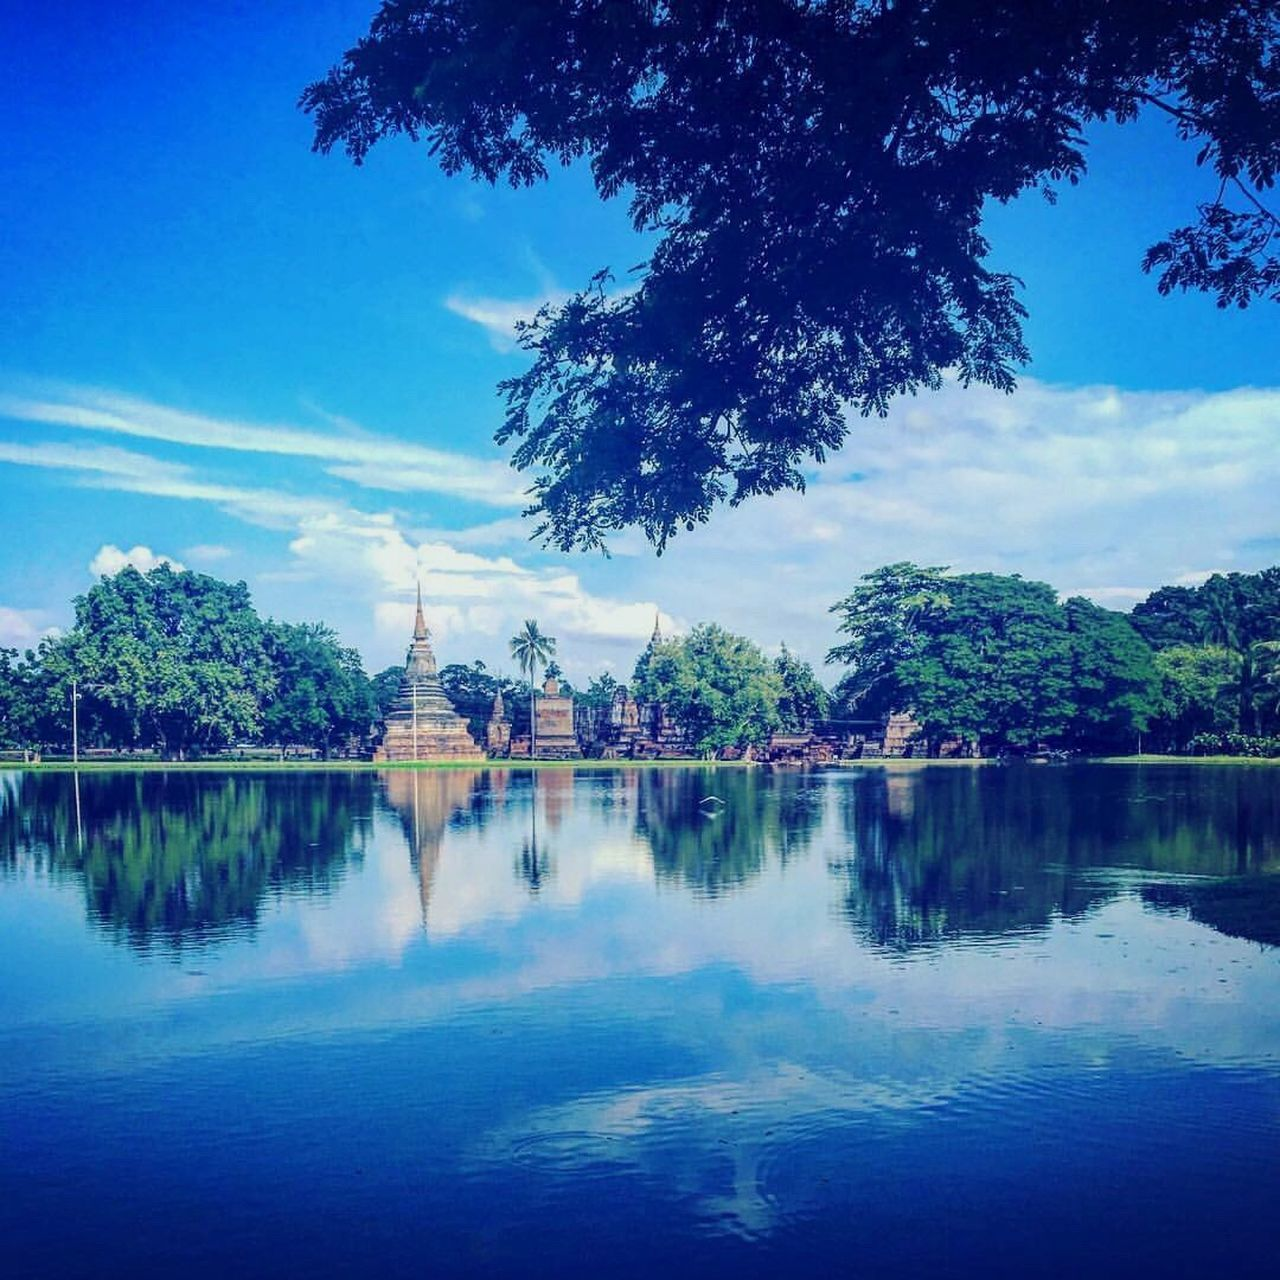 Sukhothai Tree Water Reflection Architecture Built Structure Building Exterior Lake Waterfront Sky Tranquility Travel Destinations Nature Tranquil Scene Outdoors No People Beauty In Nature Reflection Lake Scenics Day